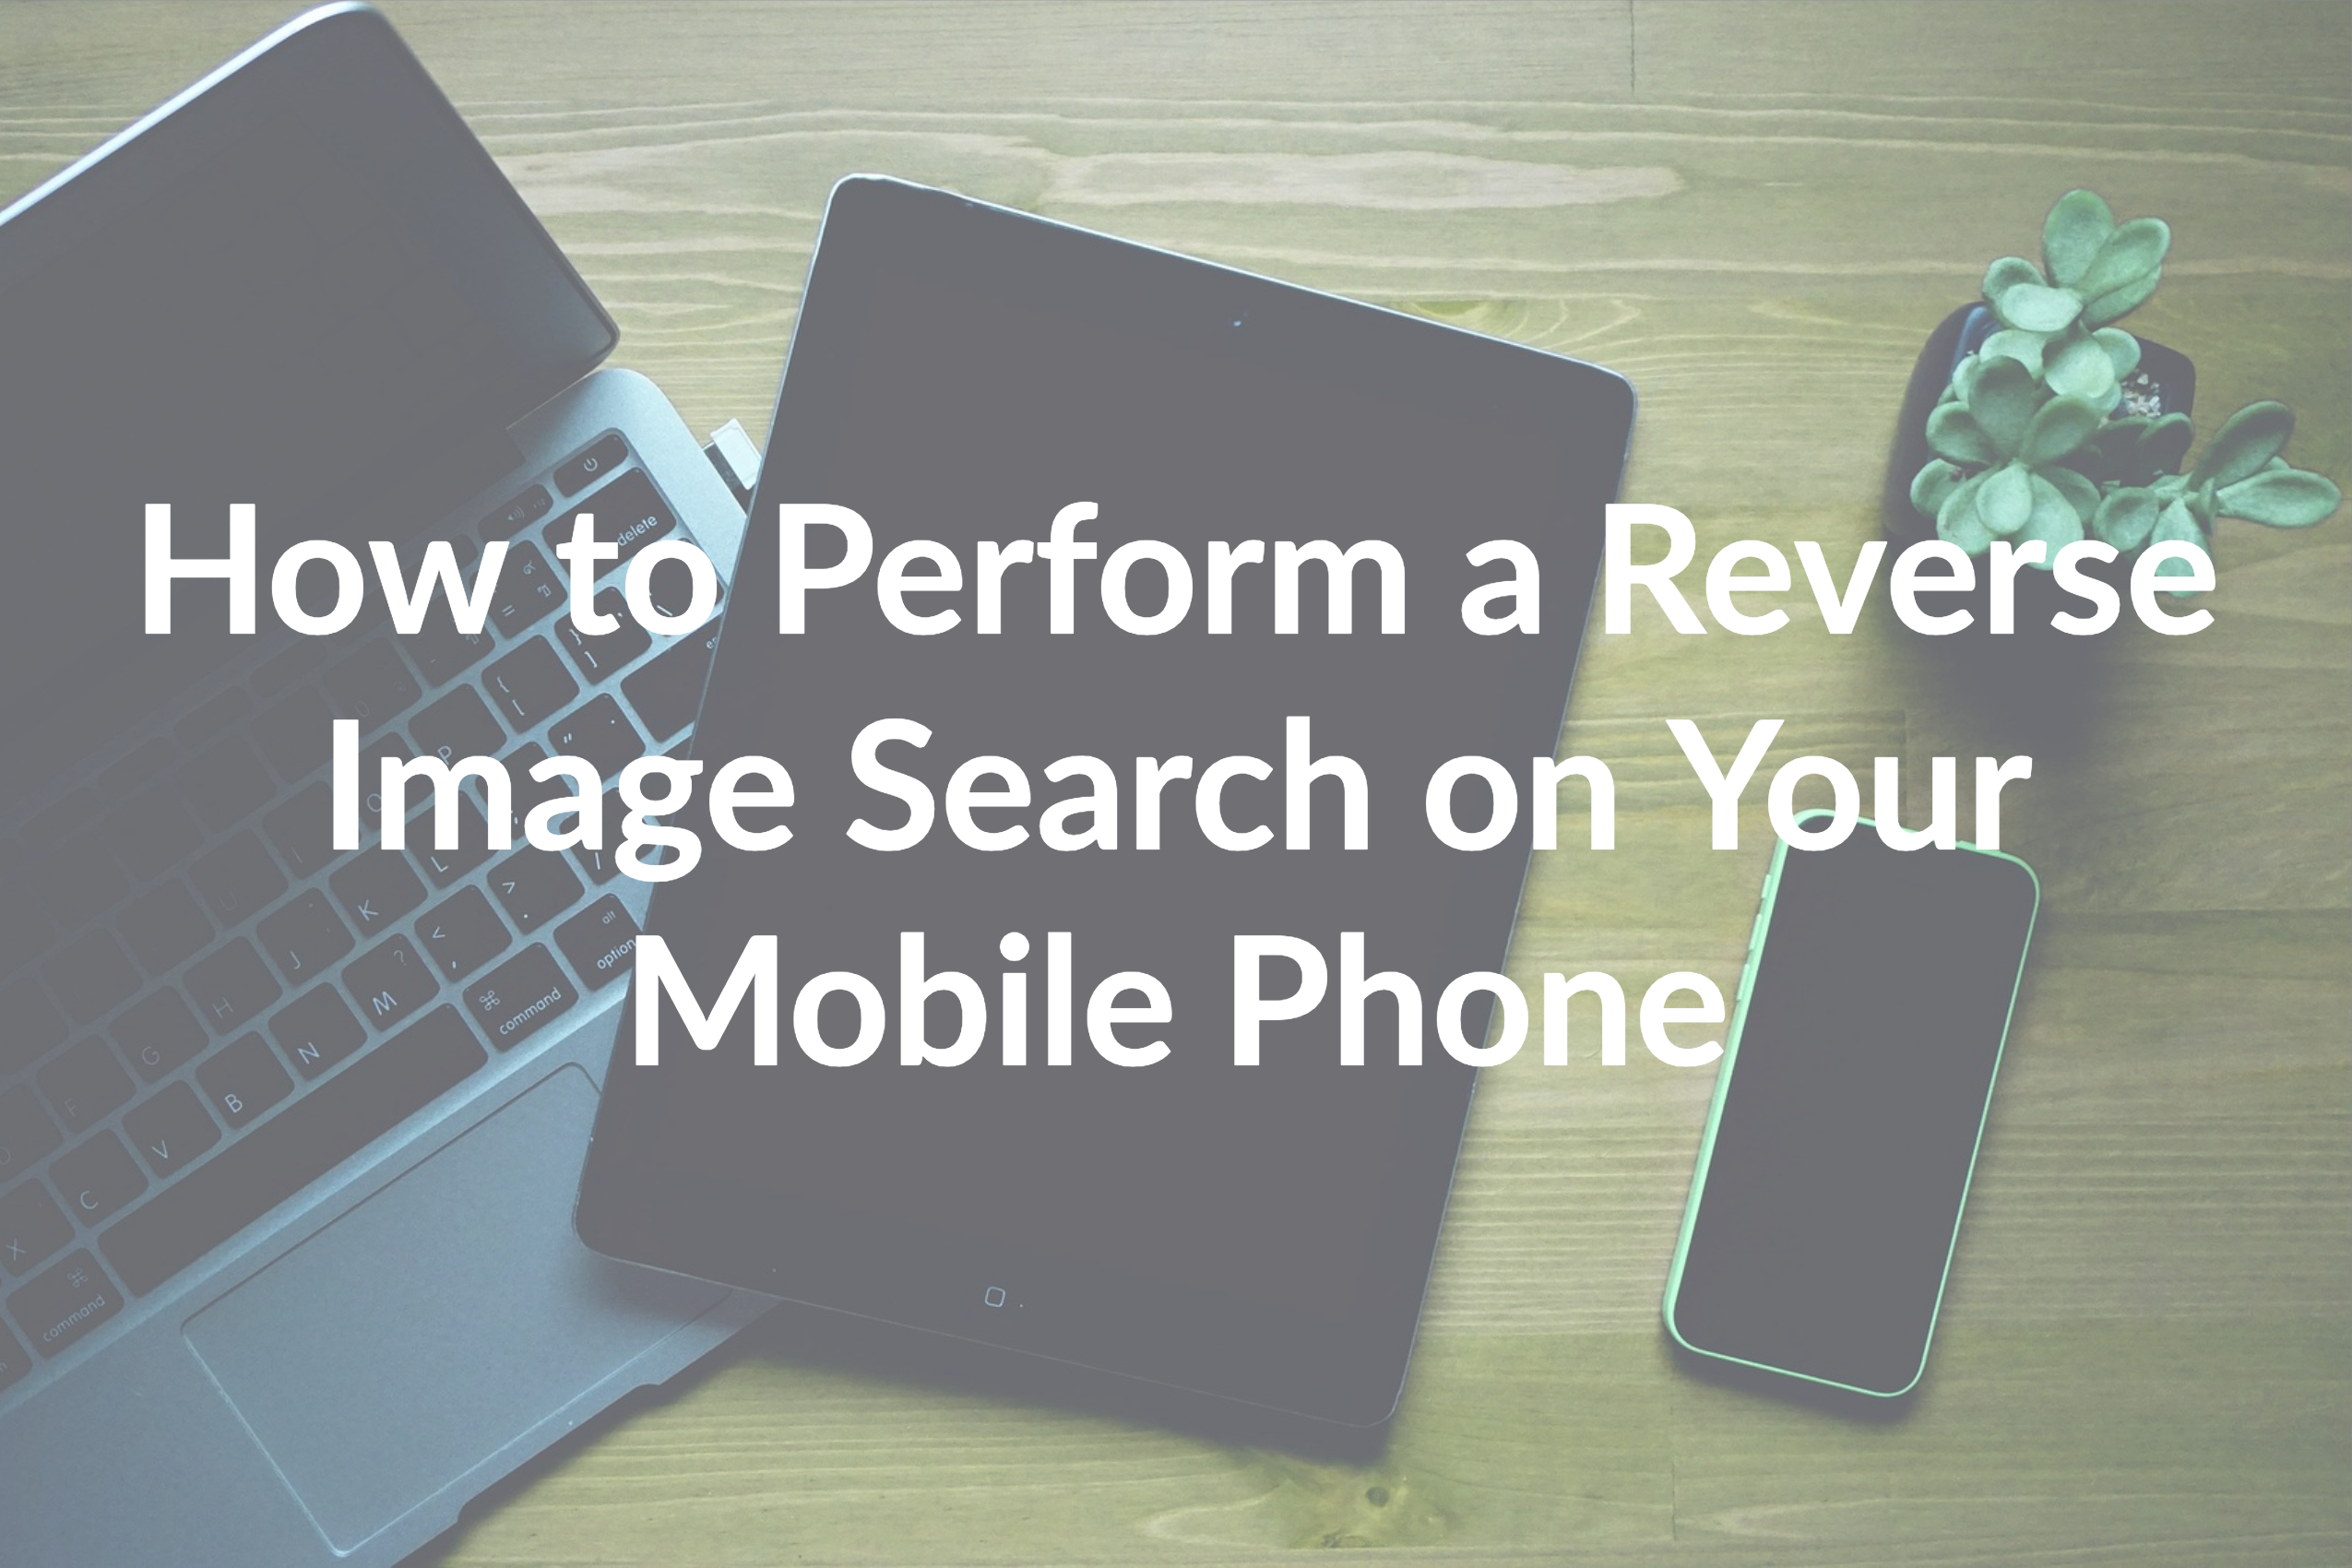 How to Perform a Reverse Image Search on Your Mobile Phone